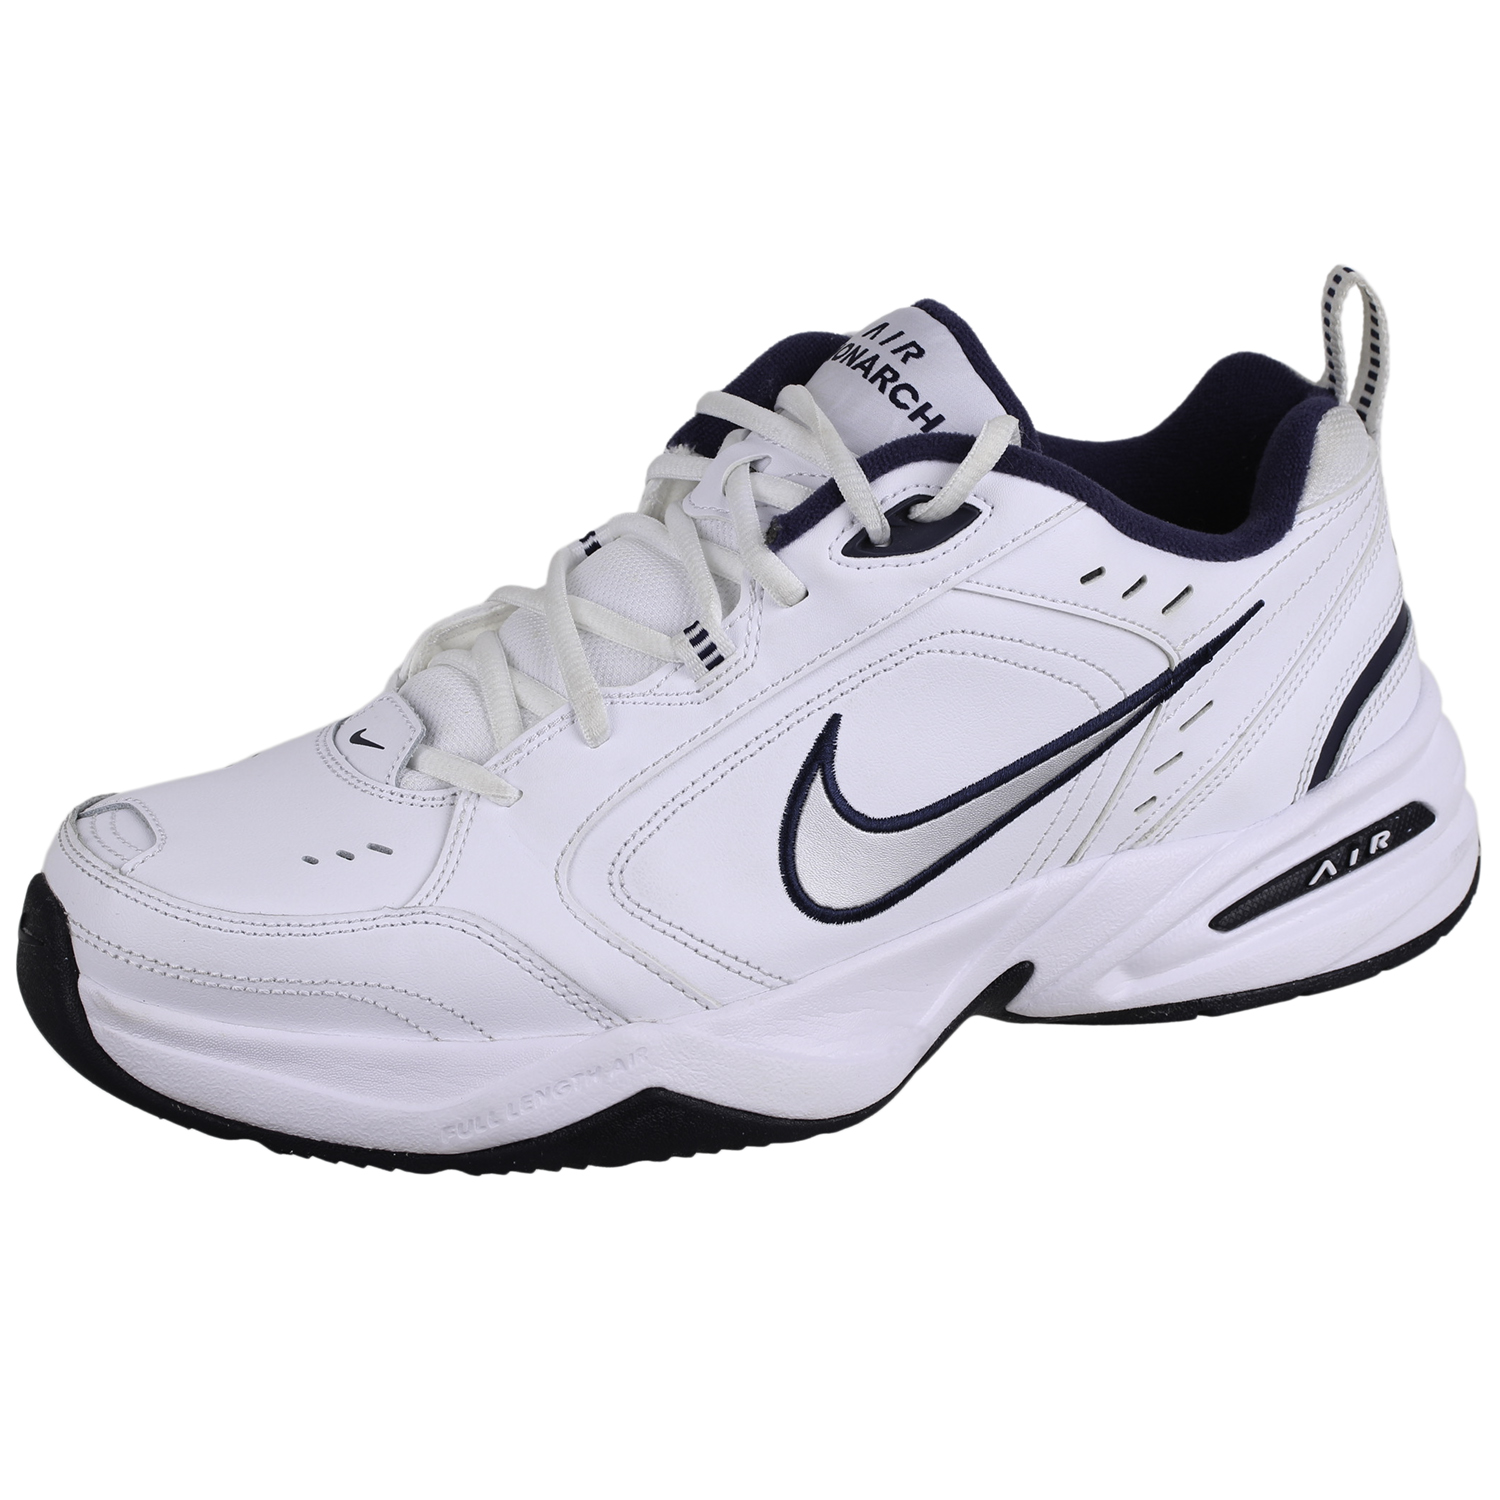 huge selection of 7358f b223b Details about Nike Mens Air Monarch IV Training Shoe White Metallic Silver  11.5